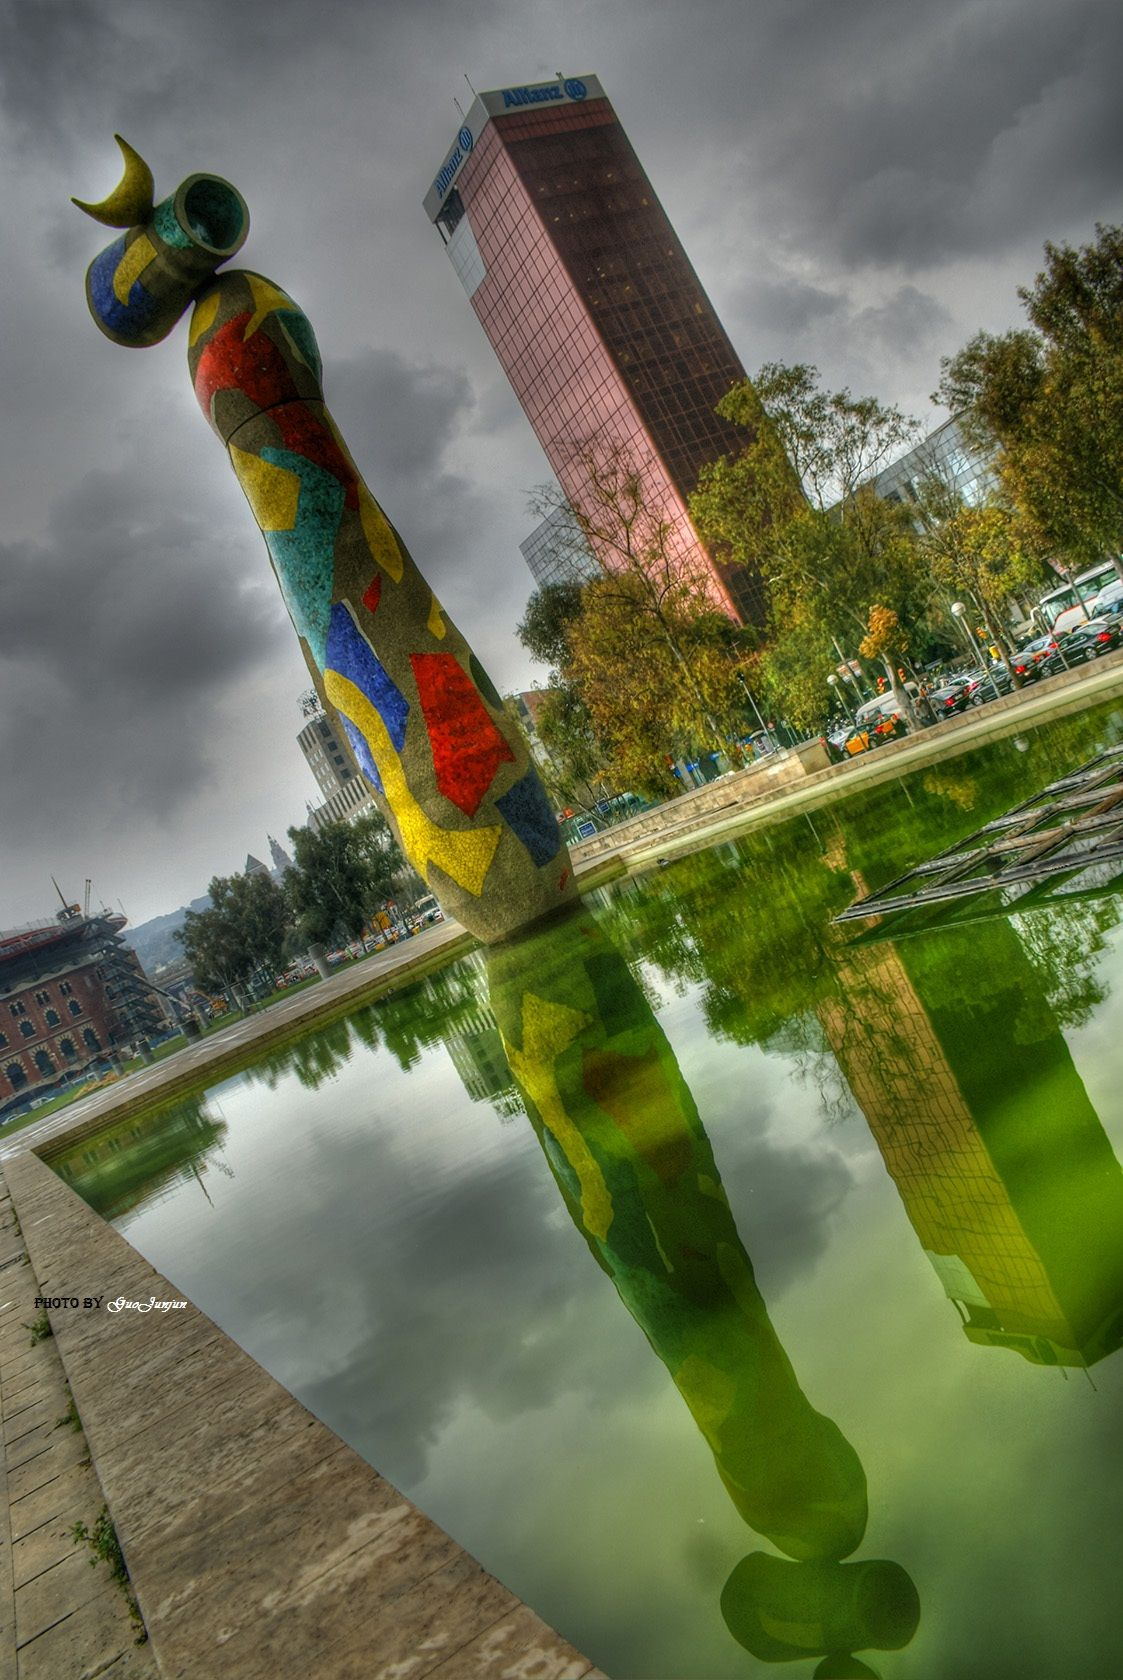 Woman and Bird (Catalan: Dona i ocell) is a 22-metre high sculpture by Joan Miró located in the Parc Joan Miró in Barcelona